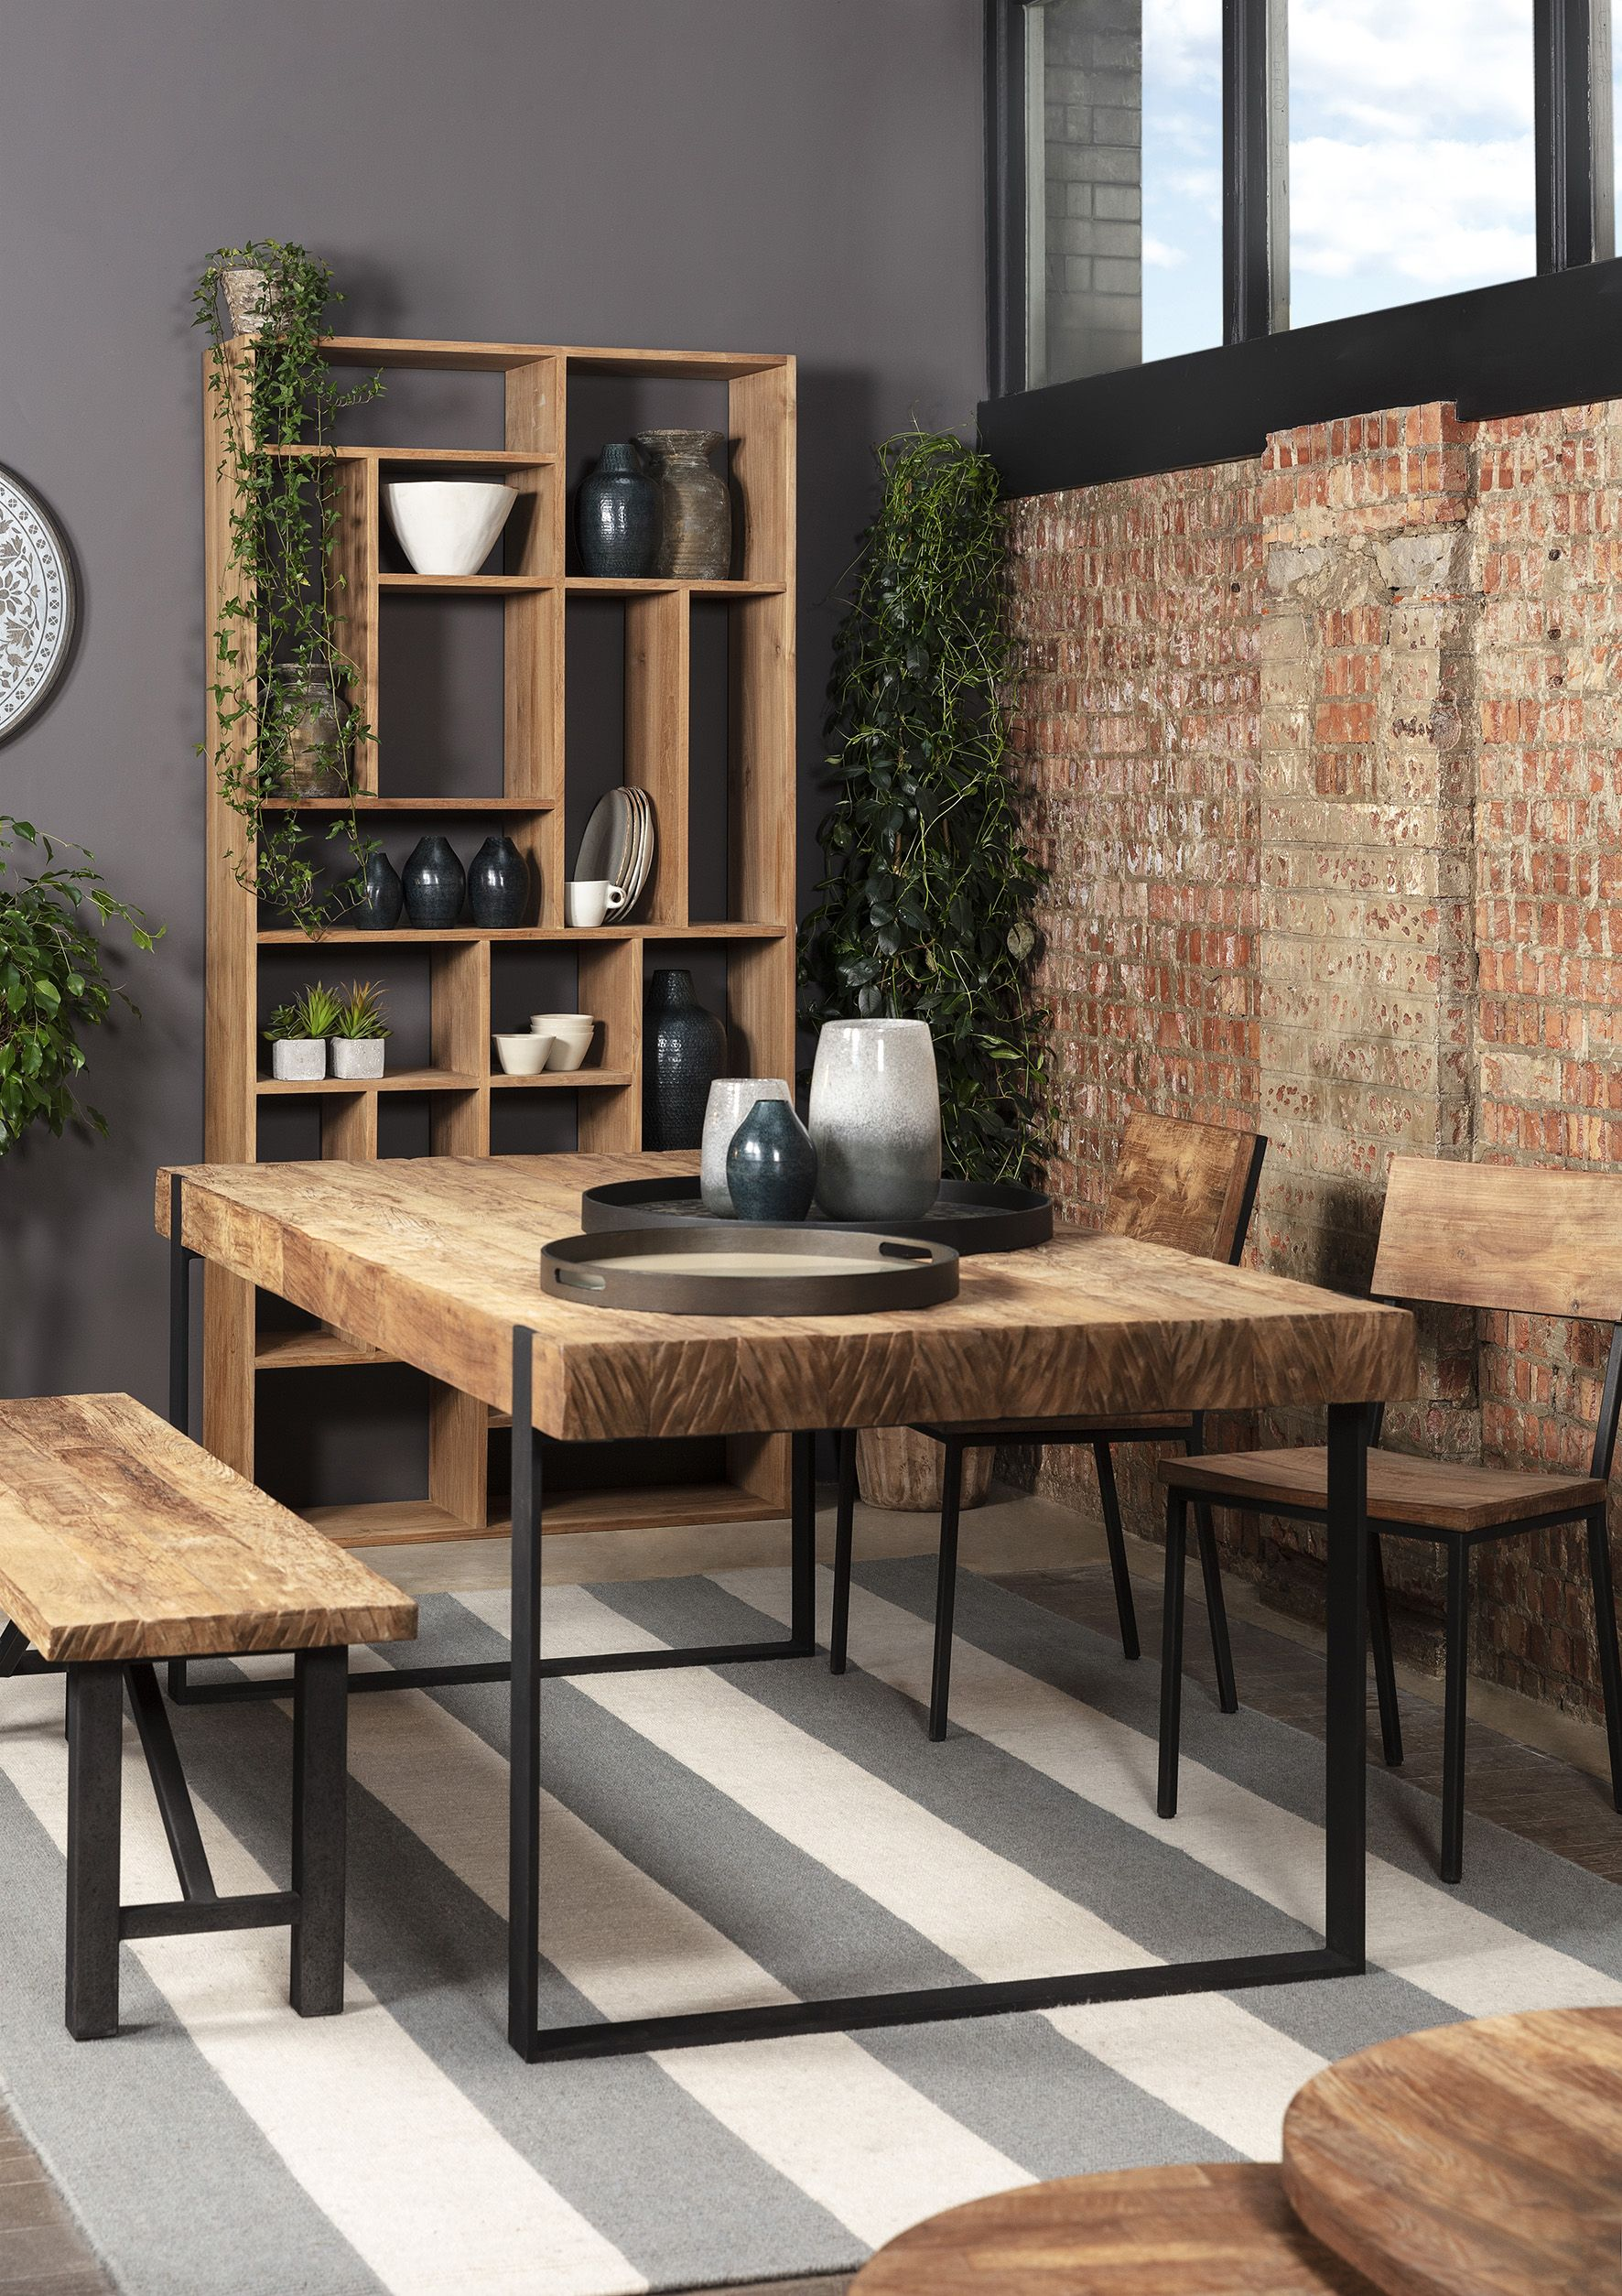 Baxter Sawn Dining Table Crafted in solid teak and